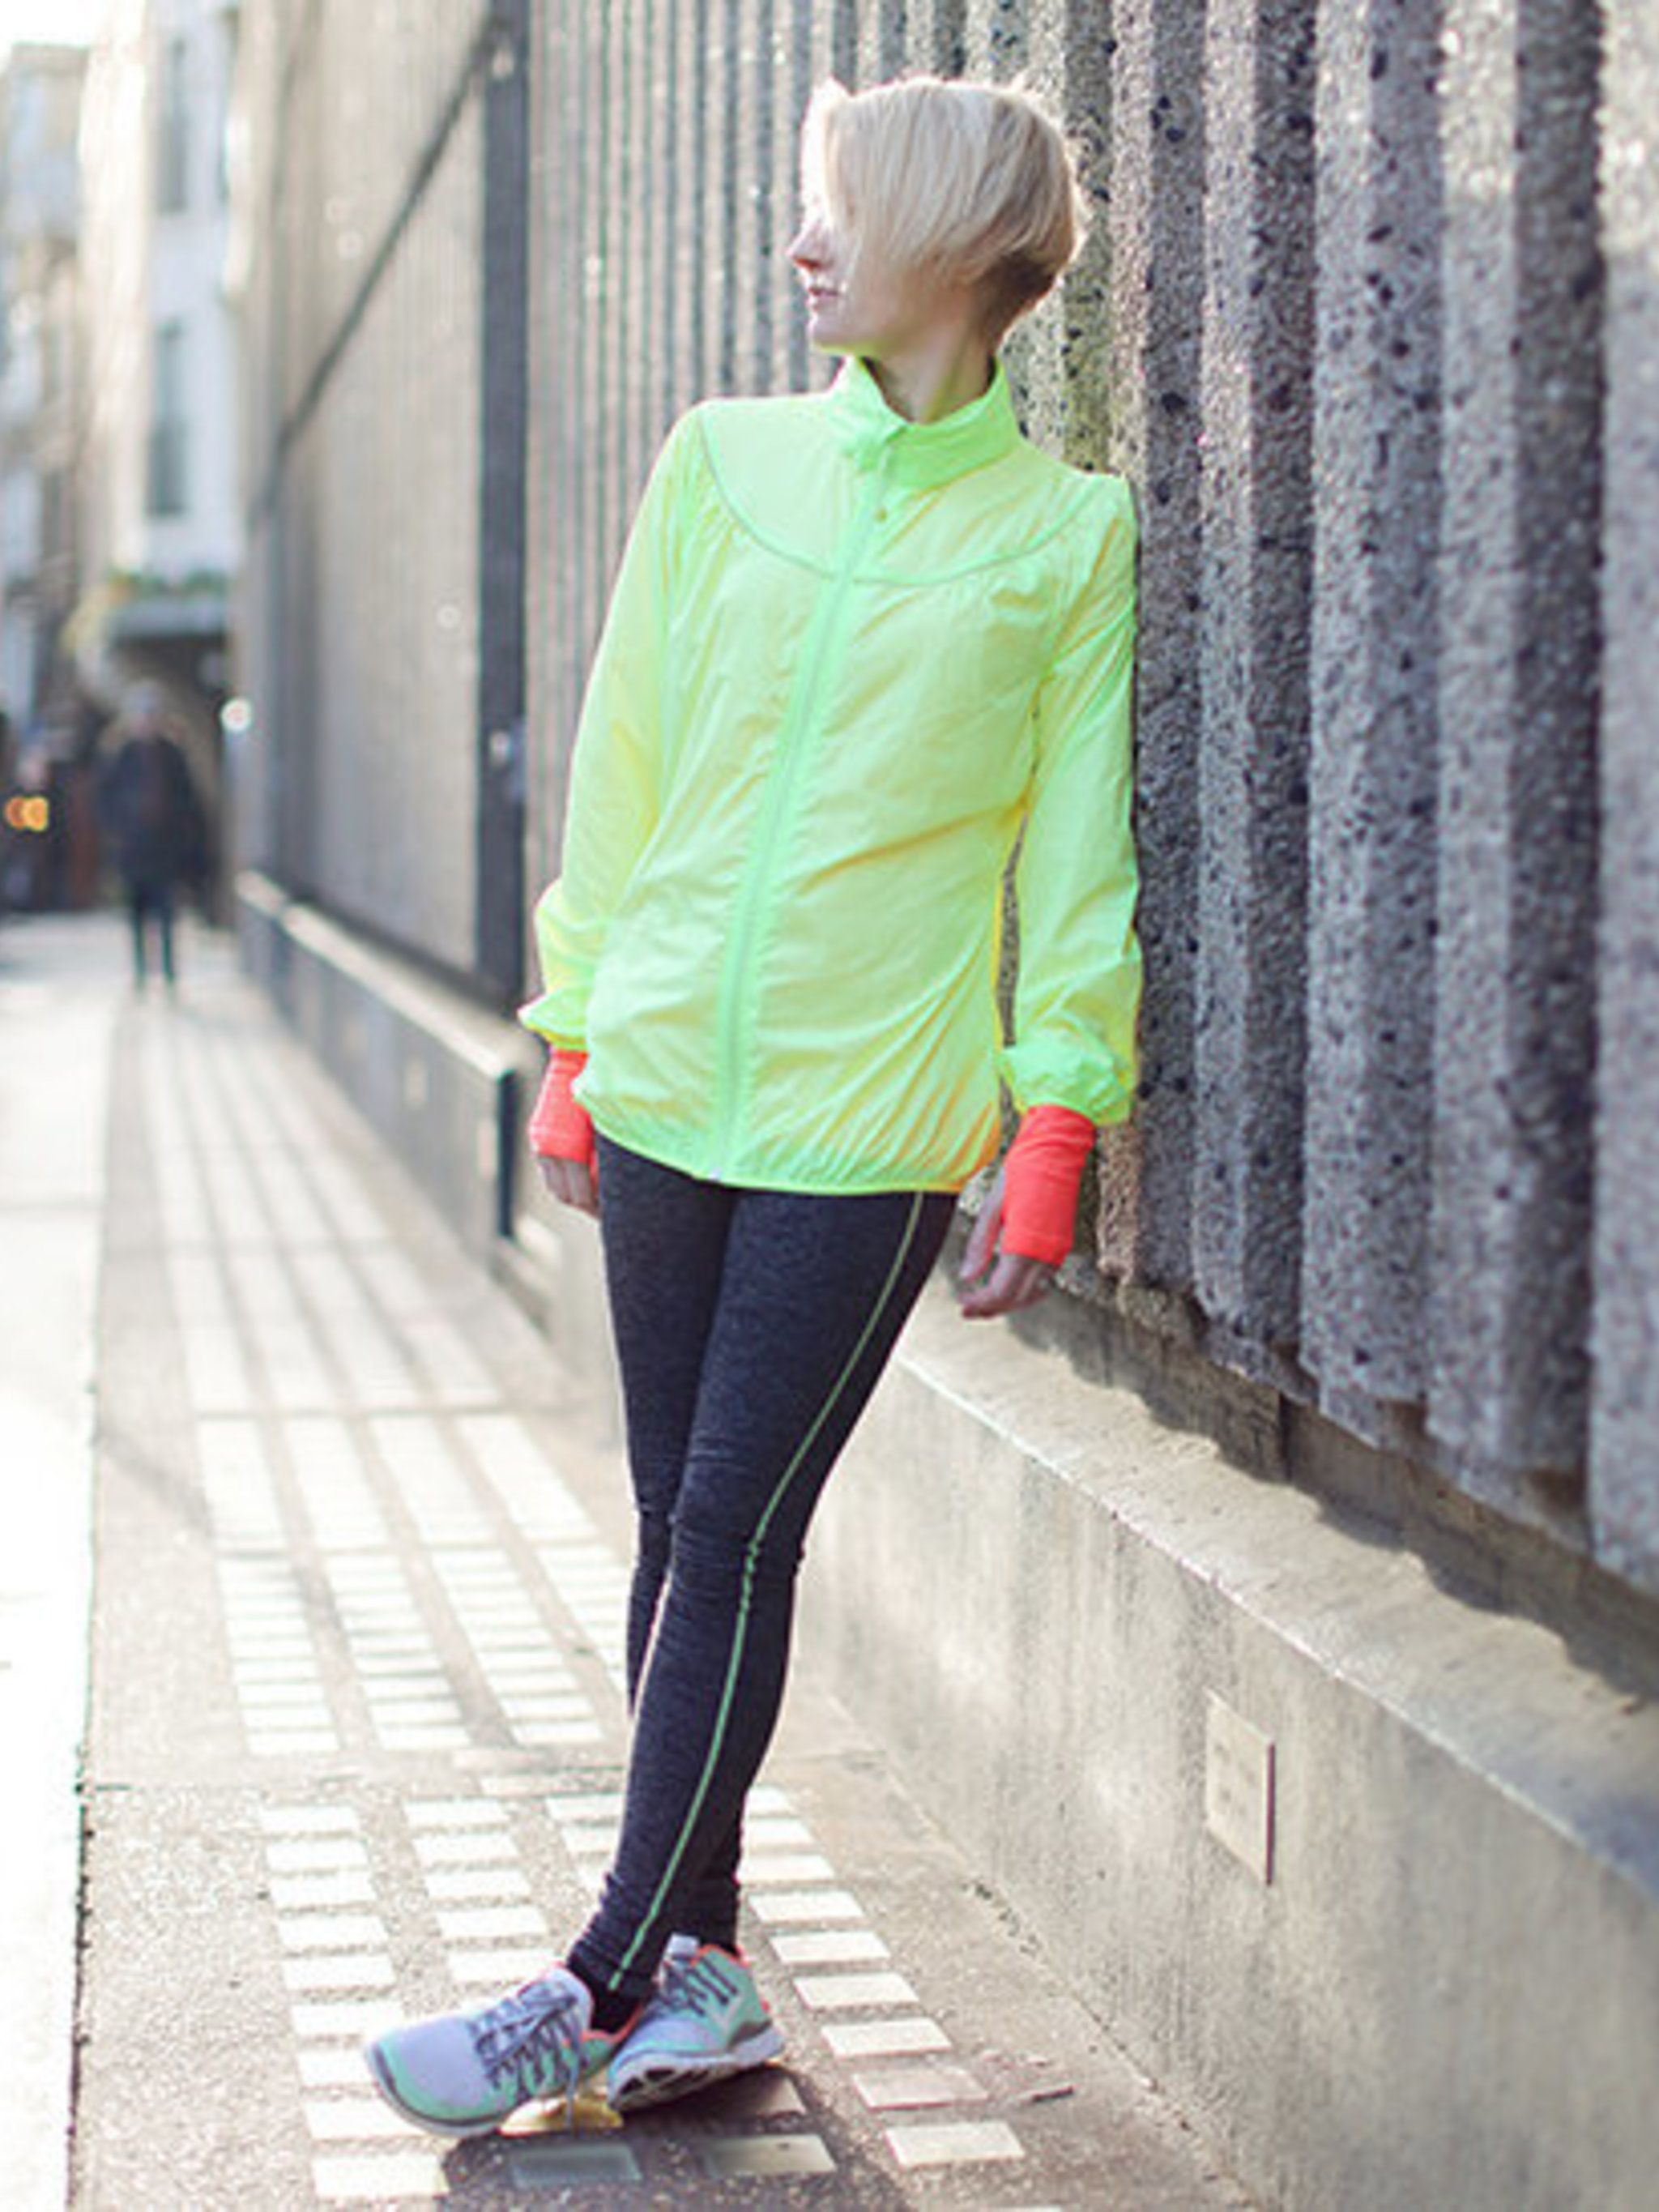 "<p>Lorraine Candy, Editor-in-Chief</p><p><a href=""http://www.sweatybetty.com/"">All kit by Sweaty Betty</a>.</p><p><a href=""http://www.nike.com/gb/en_gb/?cp=EUNS_KW_UK_1_Brand_Core"">Trainers by Nike.</a></p>"